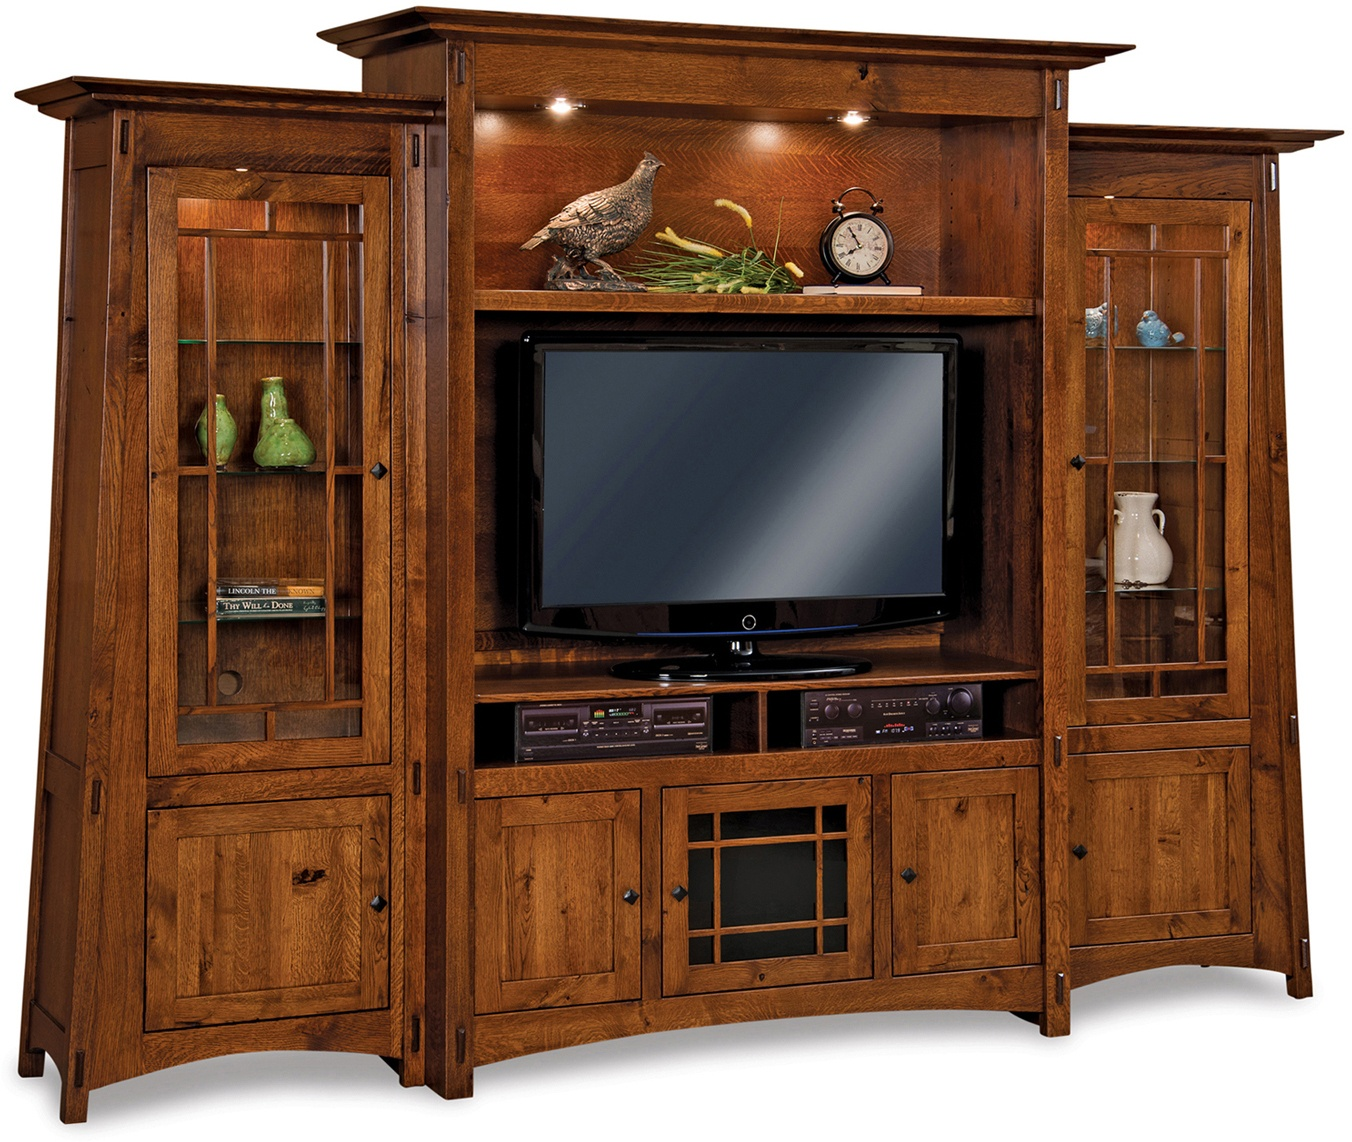 Finding The Right Home Entertainment Furniture